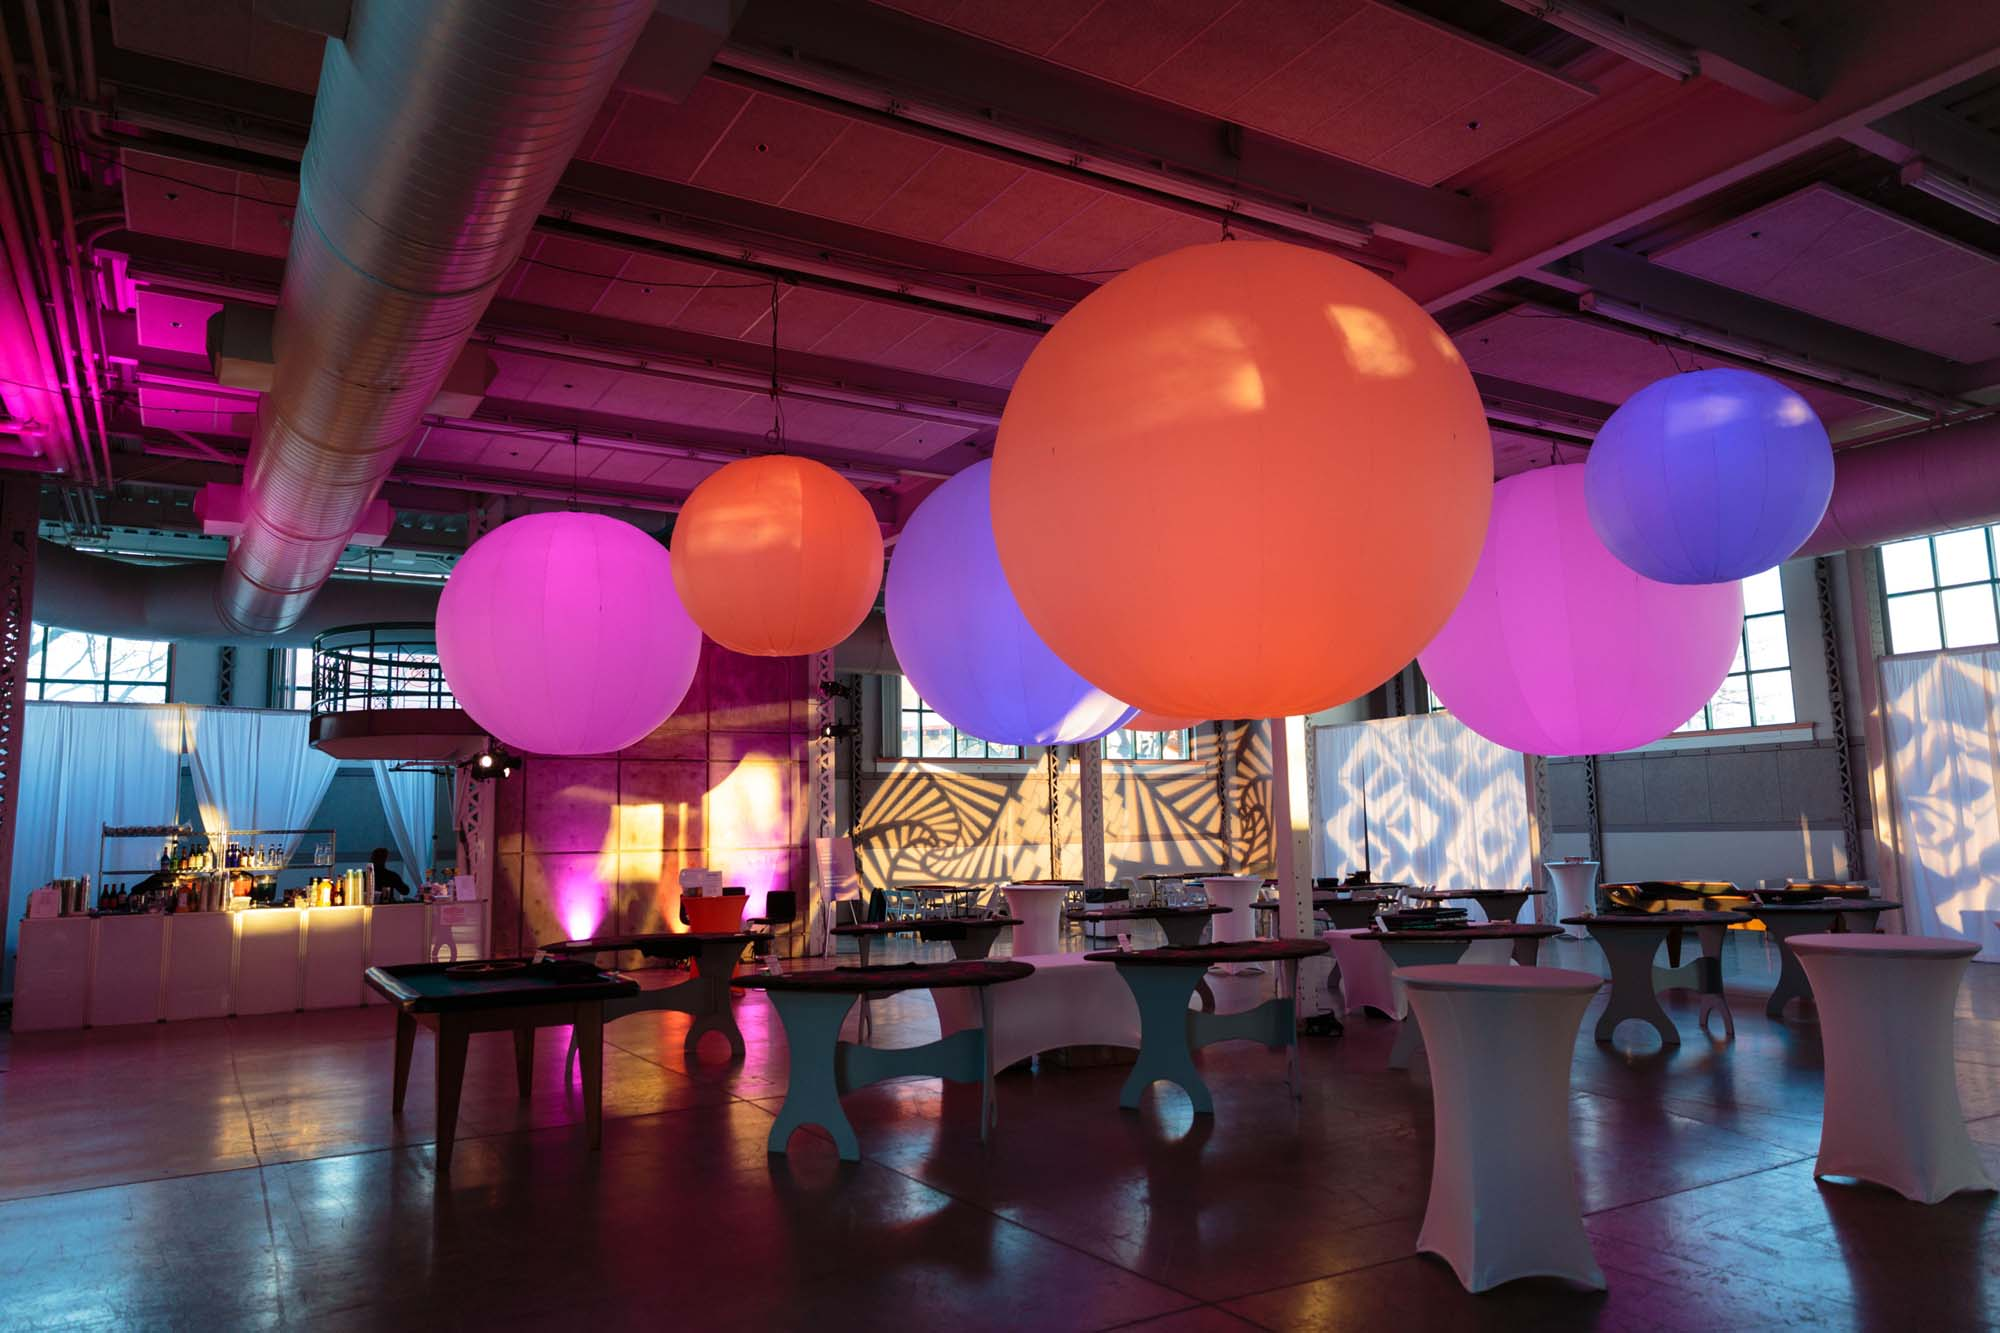 Orange, Pink and Purple Sphere H-Lights handing from Ceiling over Tables